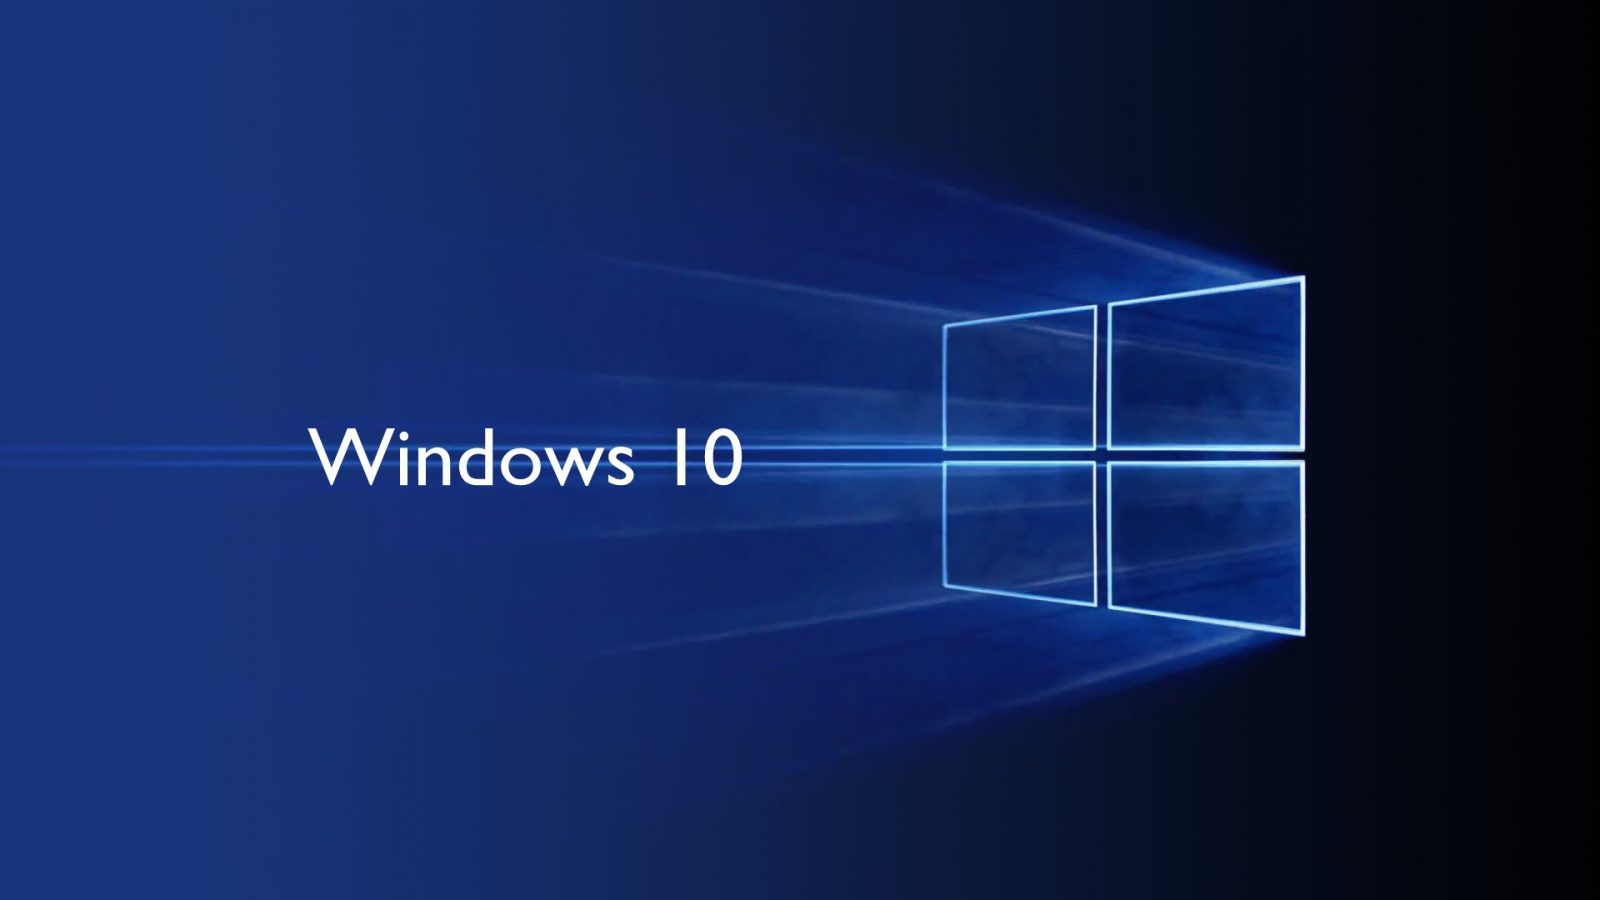 4 Tips That Will Help You Run Windows 10 Smoothly